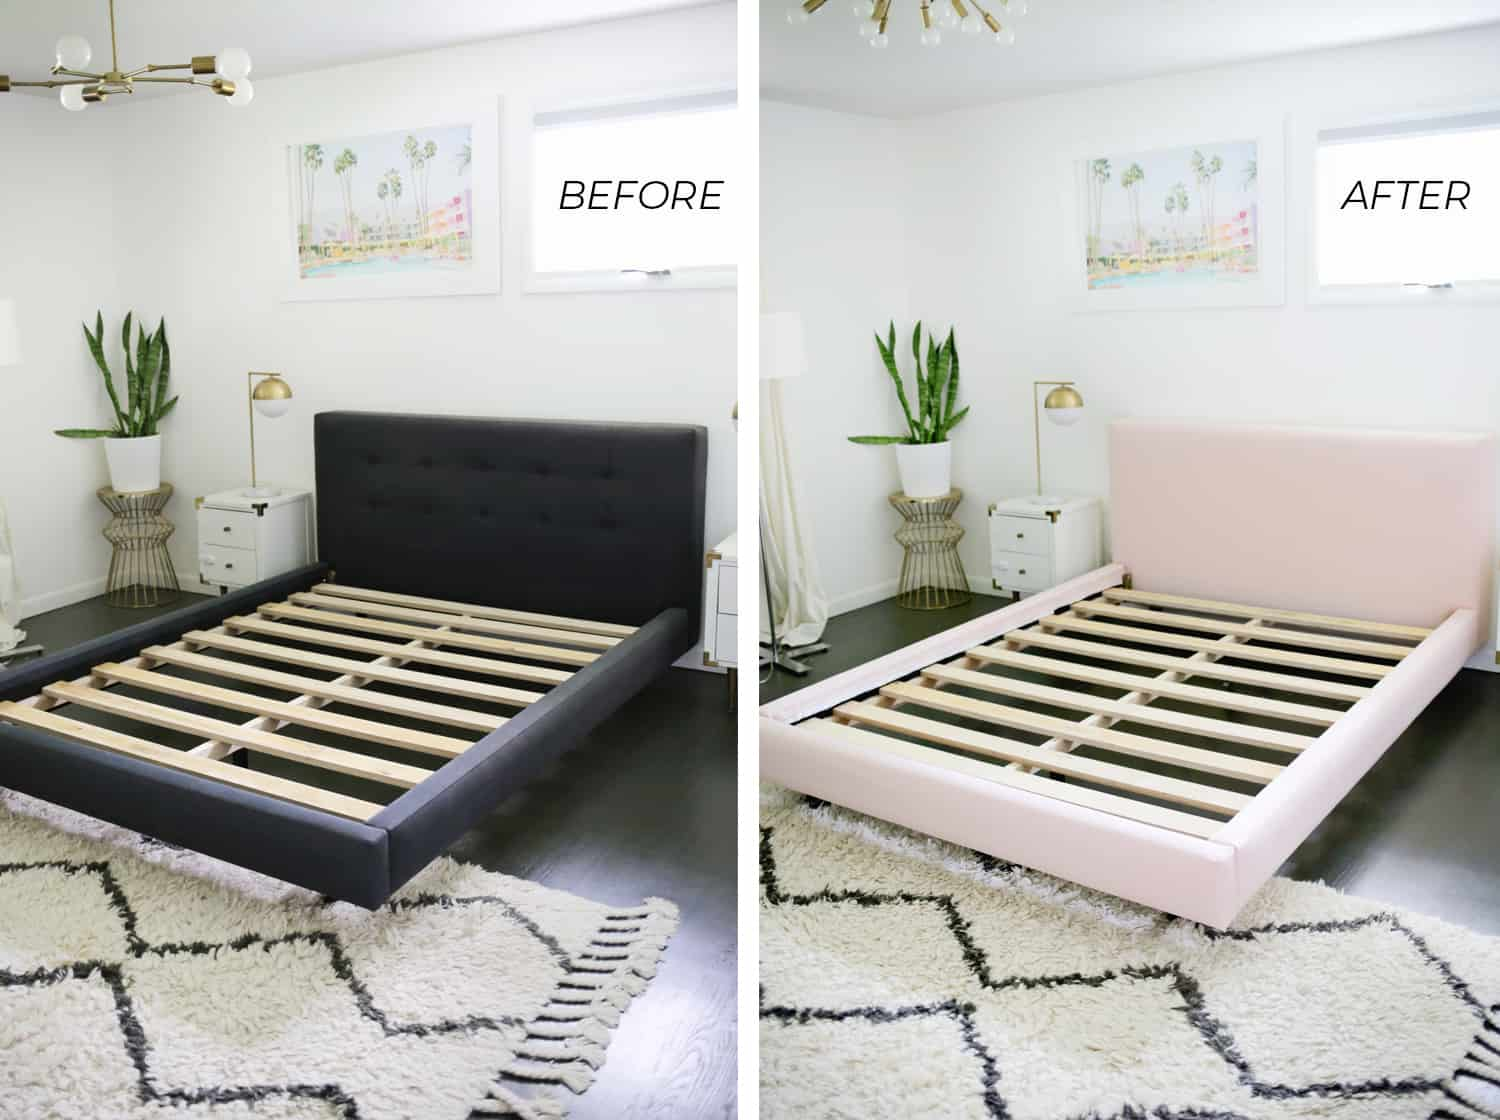 Reupholster Your Bed Frame In One Afternoon With A No Sew Option Too A Beautiful Mess